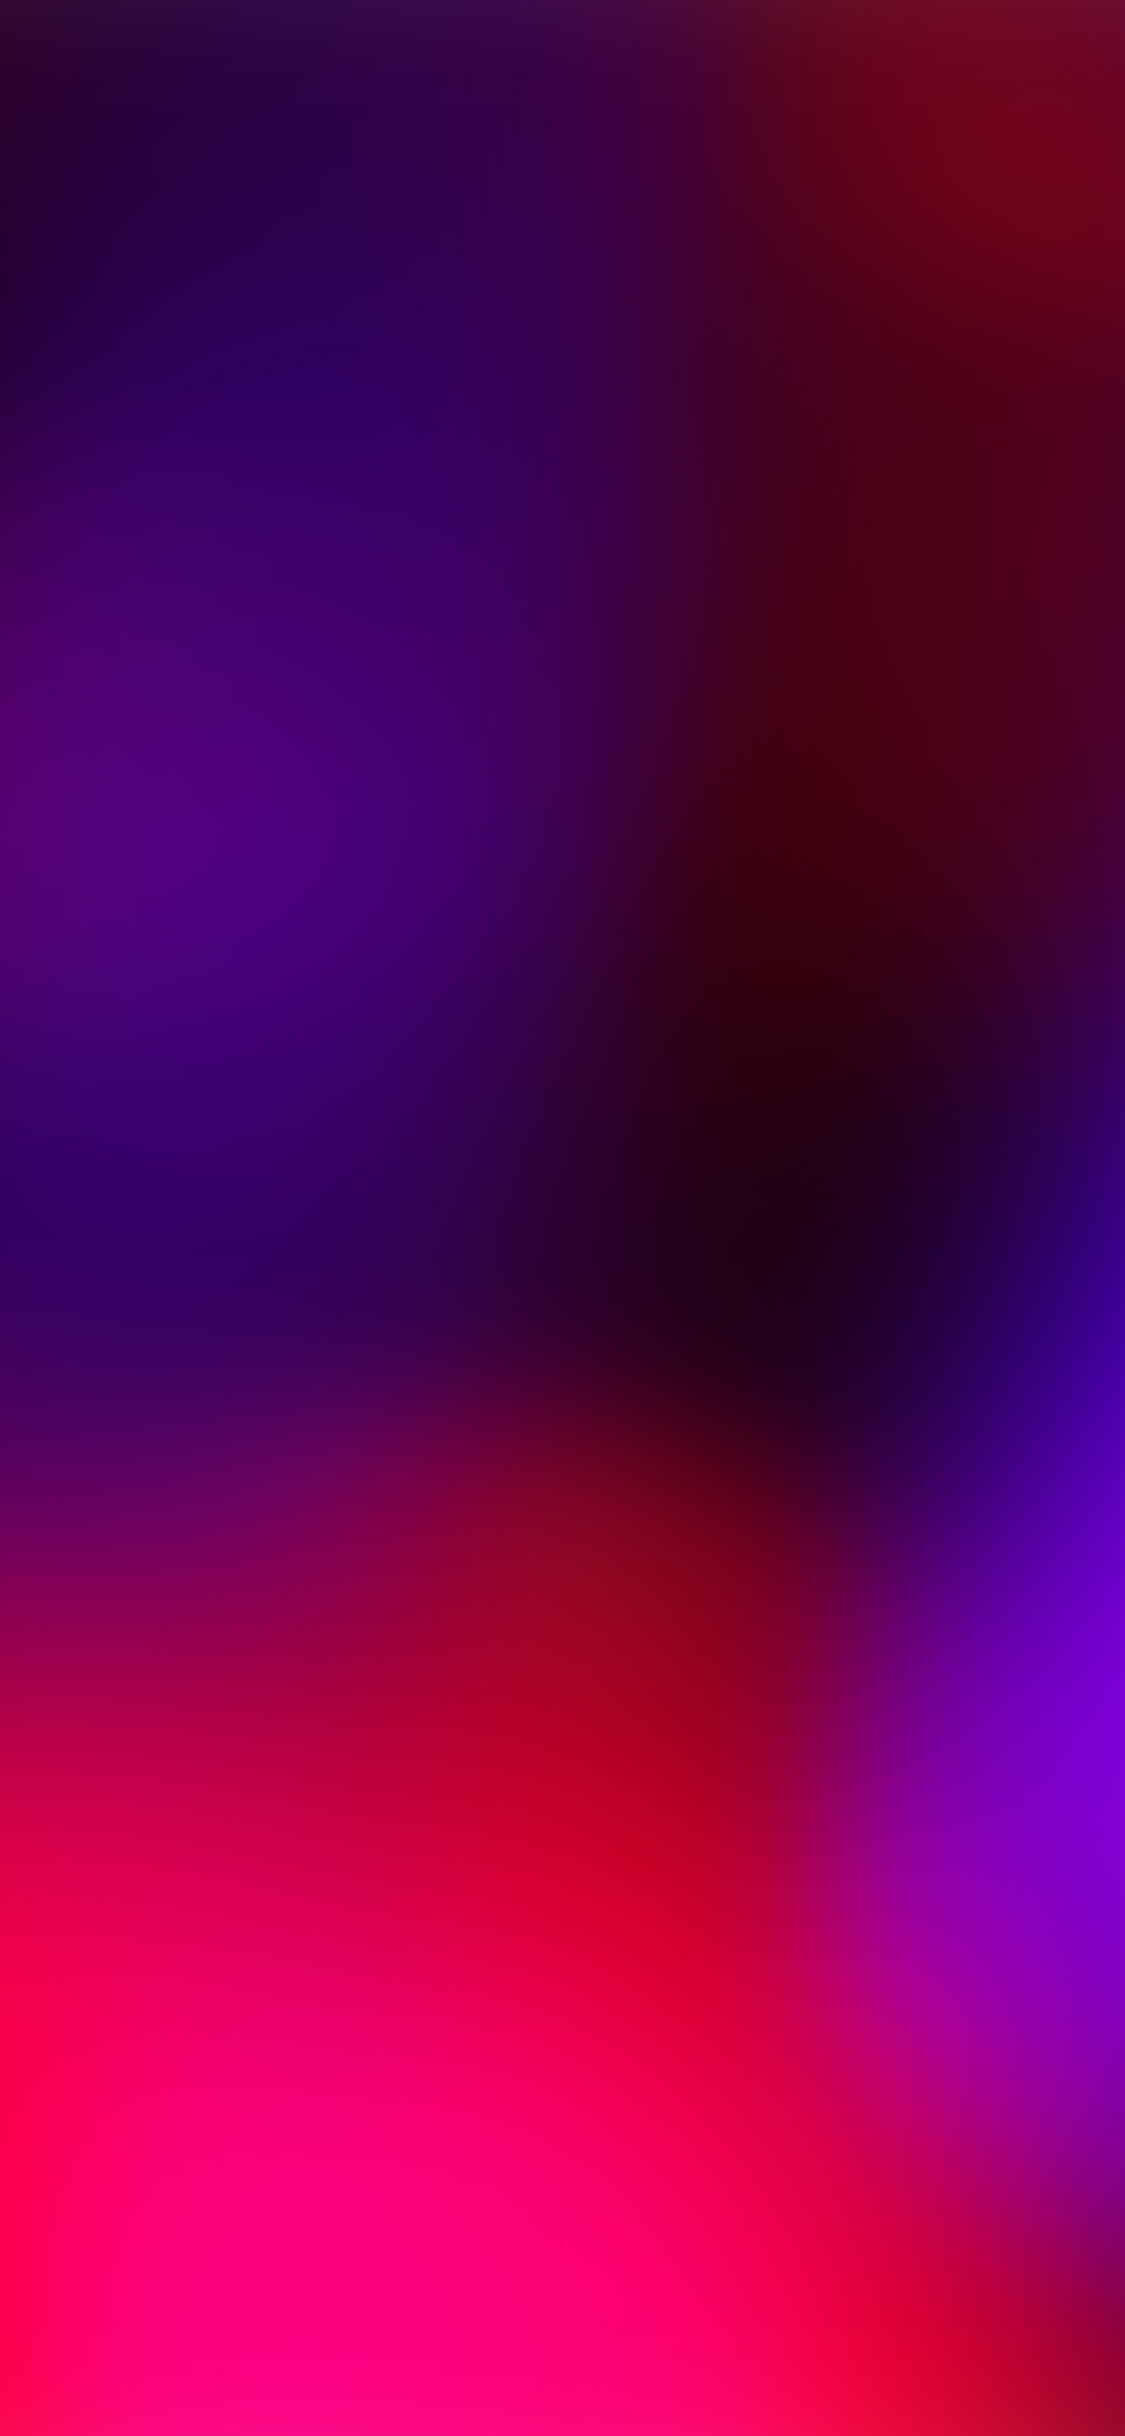 iPhoneXpapers.com-Apple-iPhone-wallpaper-sk49-purple-red-party-blur-gradation